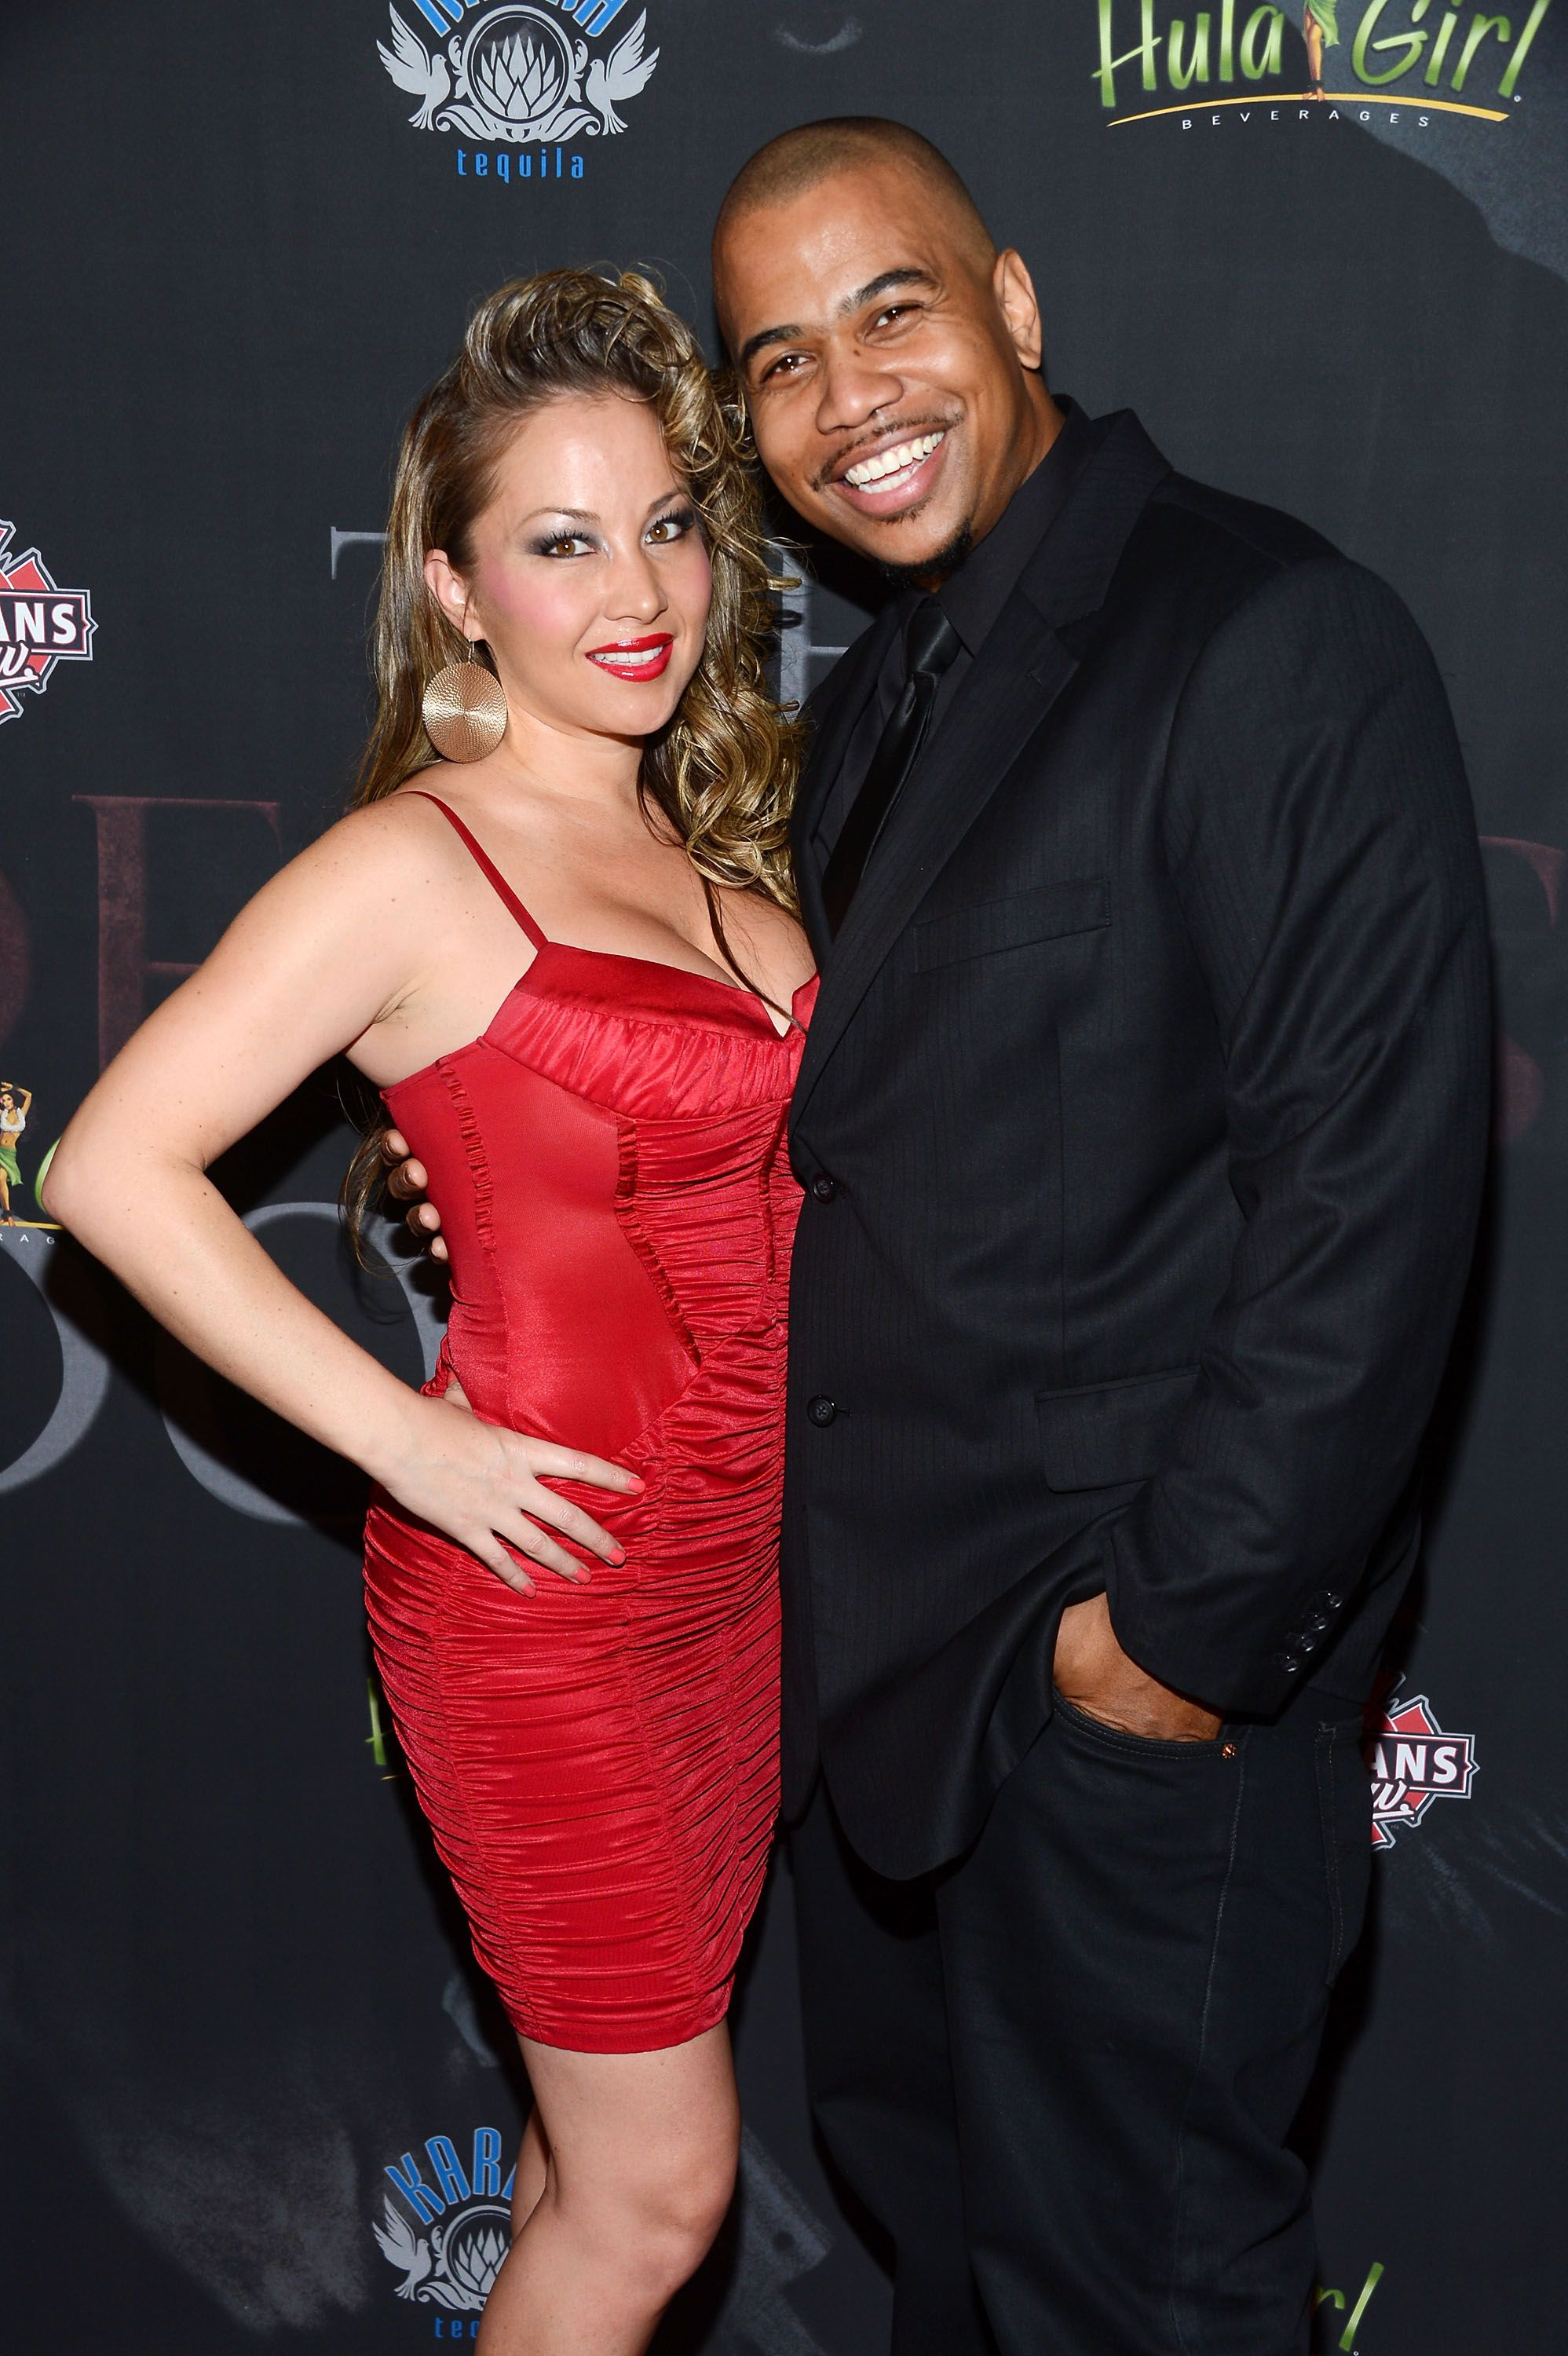 Omar Gooding and wife Mia Vogel attend a formal event | Source: Getty Images/GlobalImagesUkraine